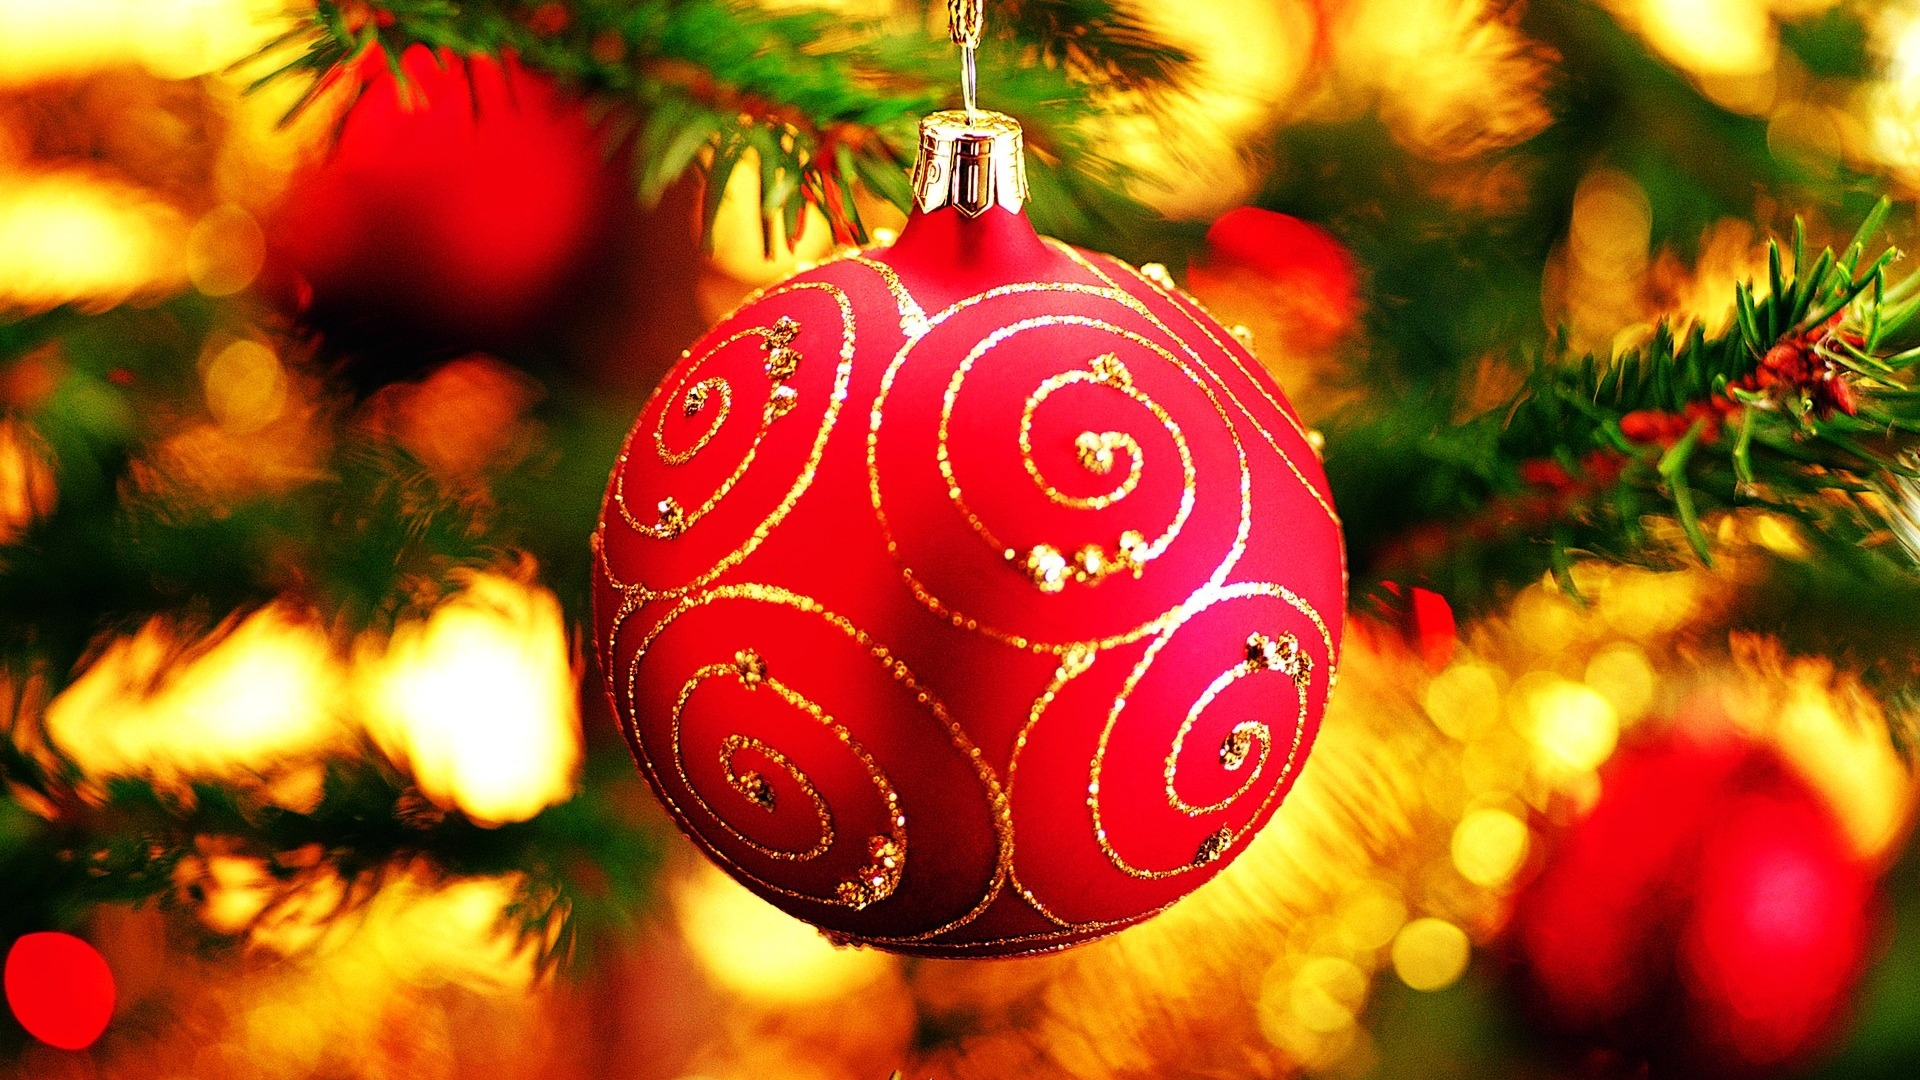 Christmas tree decoration ball ornaments Wallpaper 1920x1080